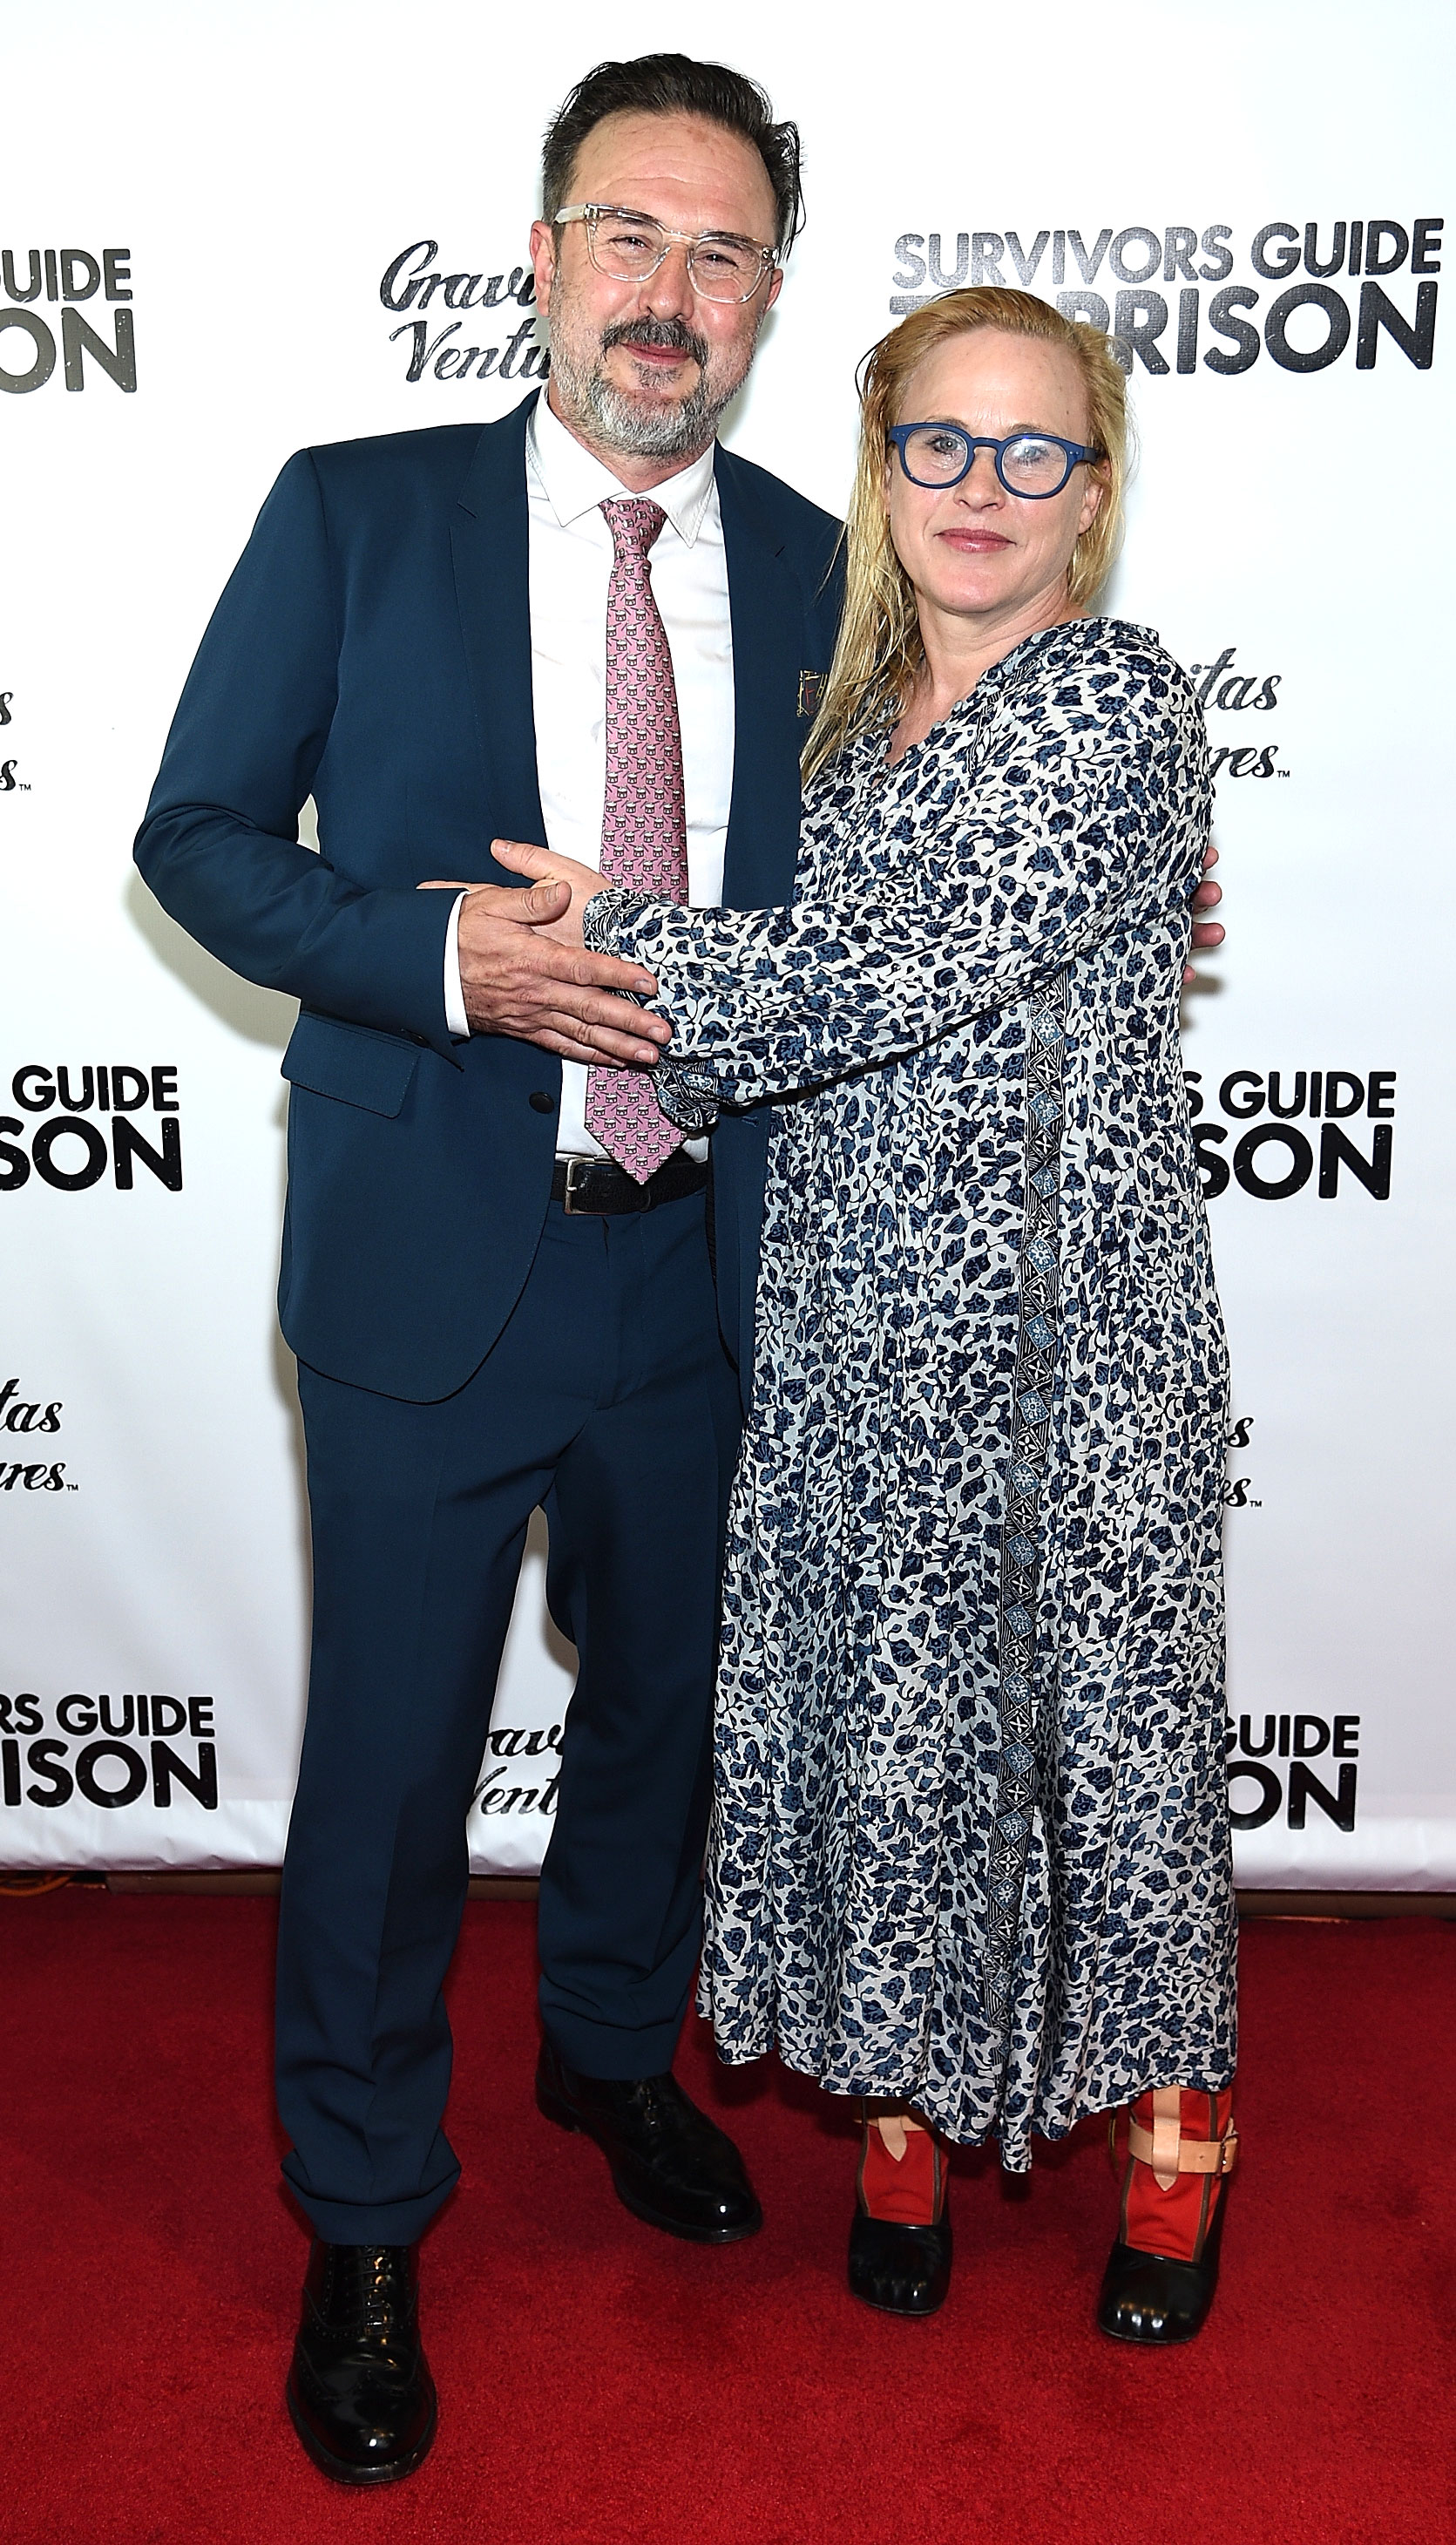 """David Arquette Had Heart Attack Before Wrestling Return, Says Sister Patricia - David Arquette and Patricia Arquette attend """"Survivors Guide To Prison"""" New York Premiere at The Landmark at 57 West on February 21, 2018 in New York City."""